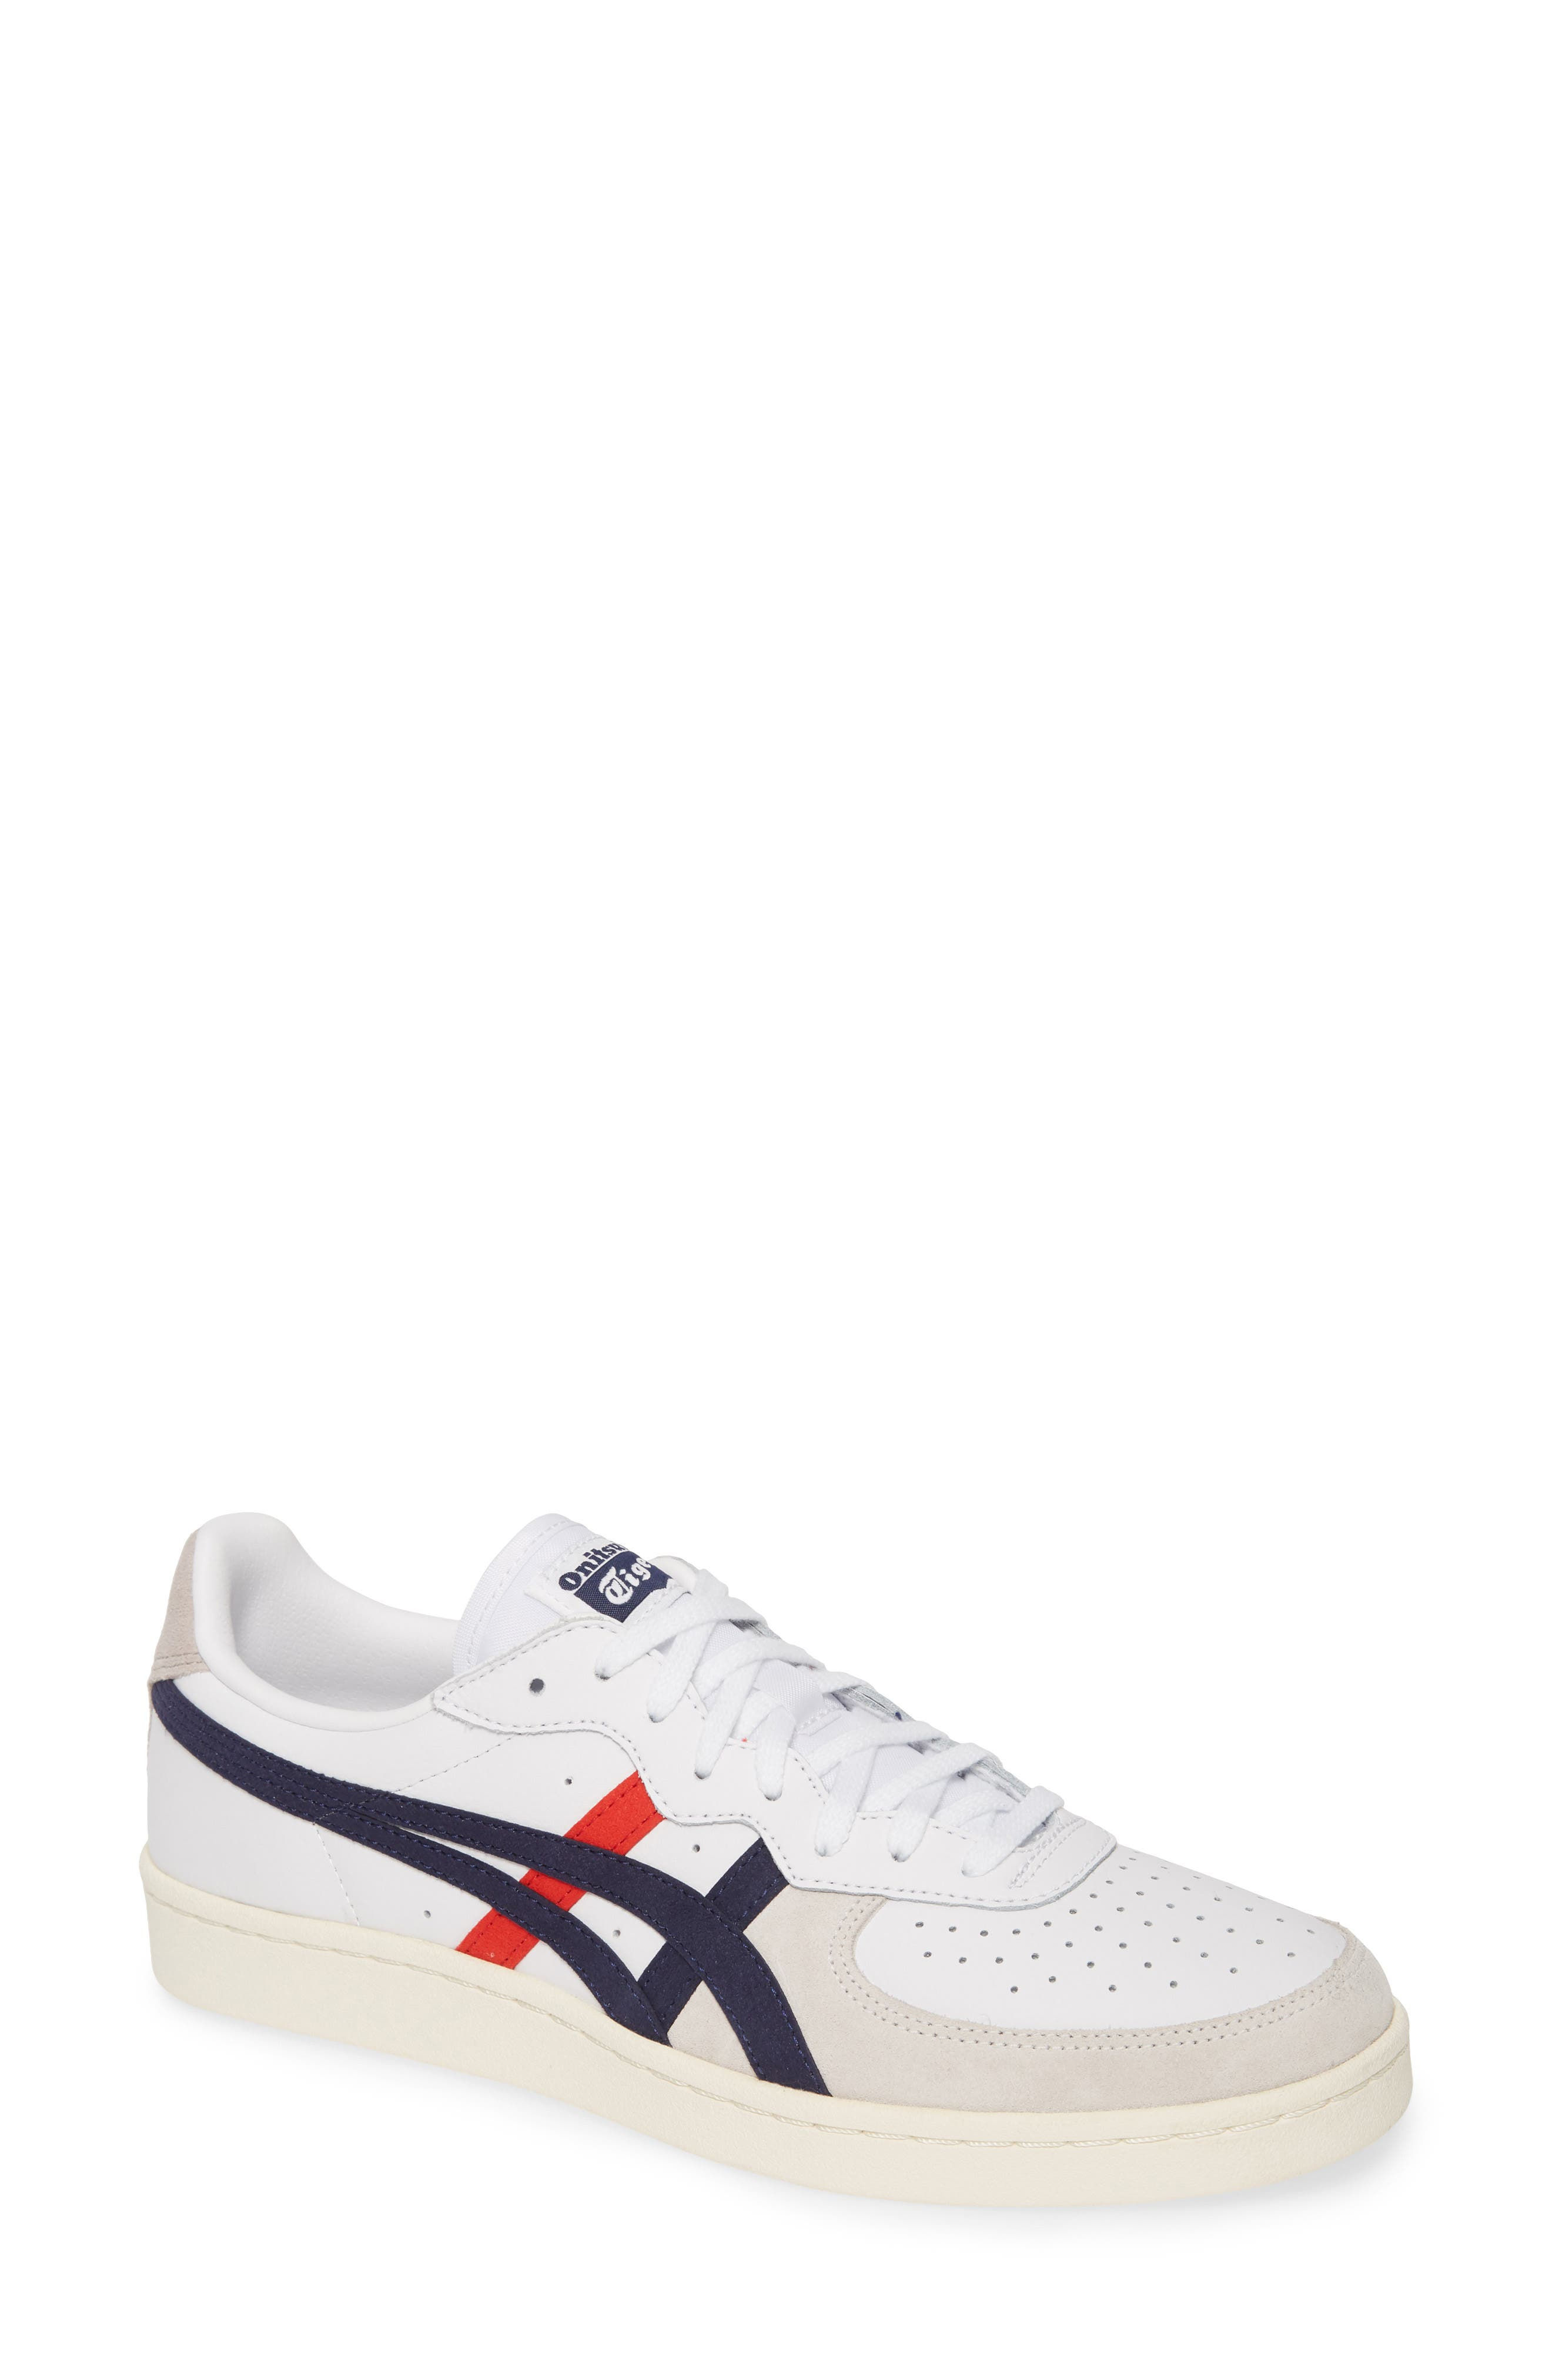 asics shoes sneakers